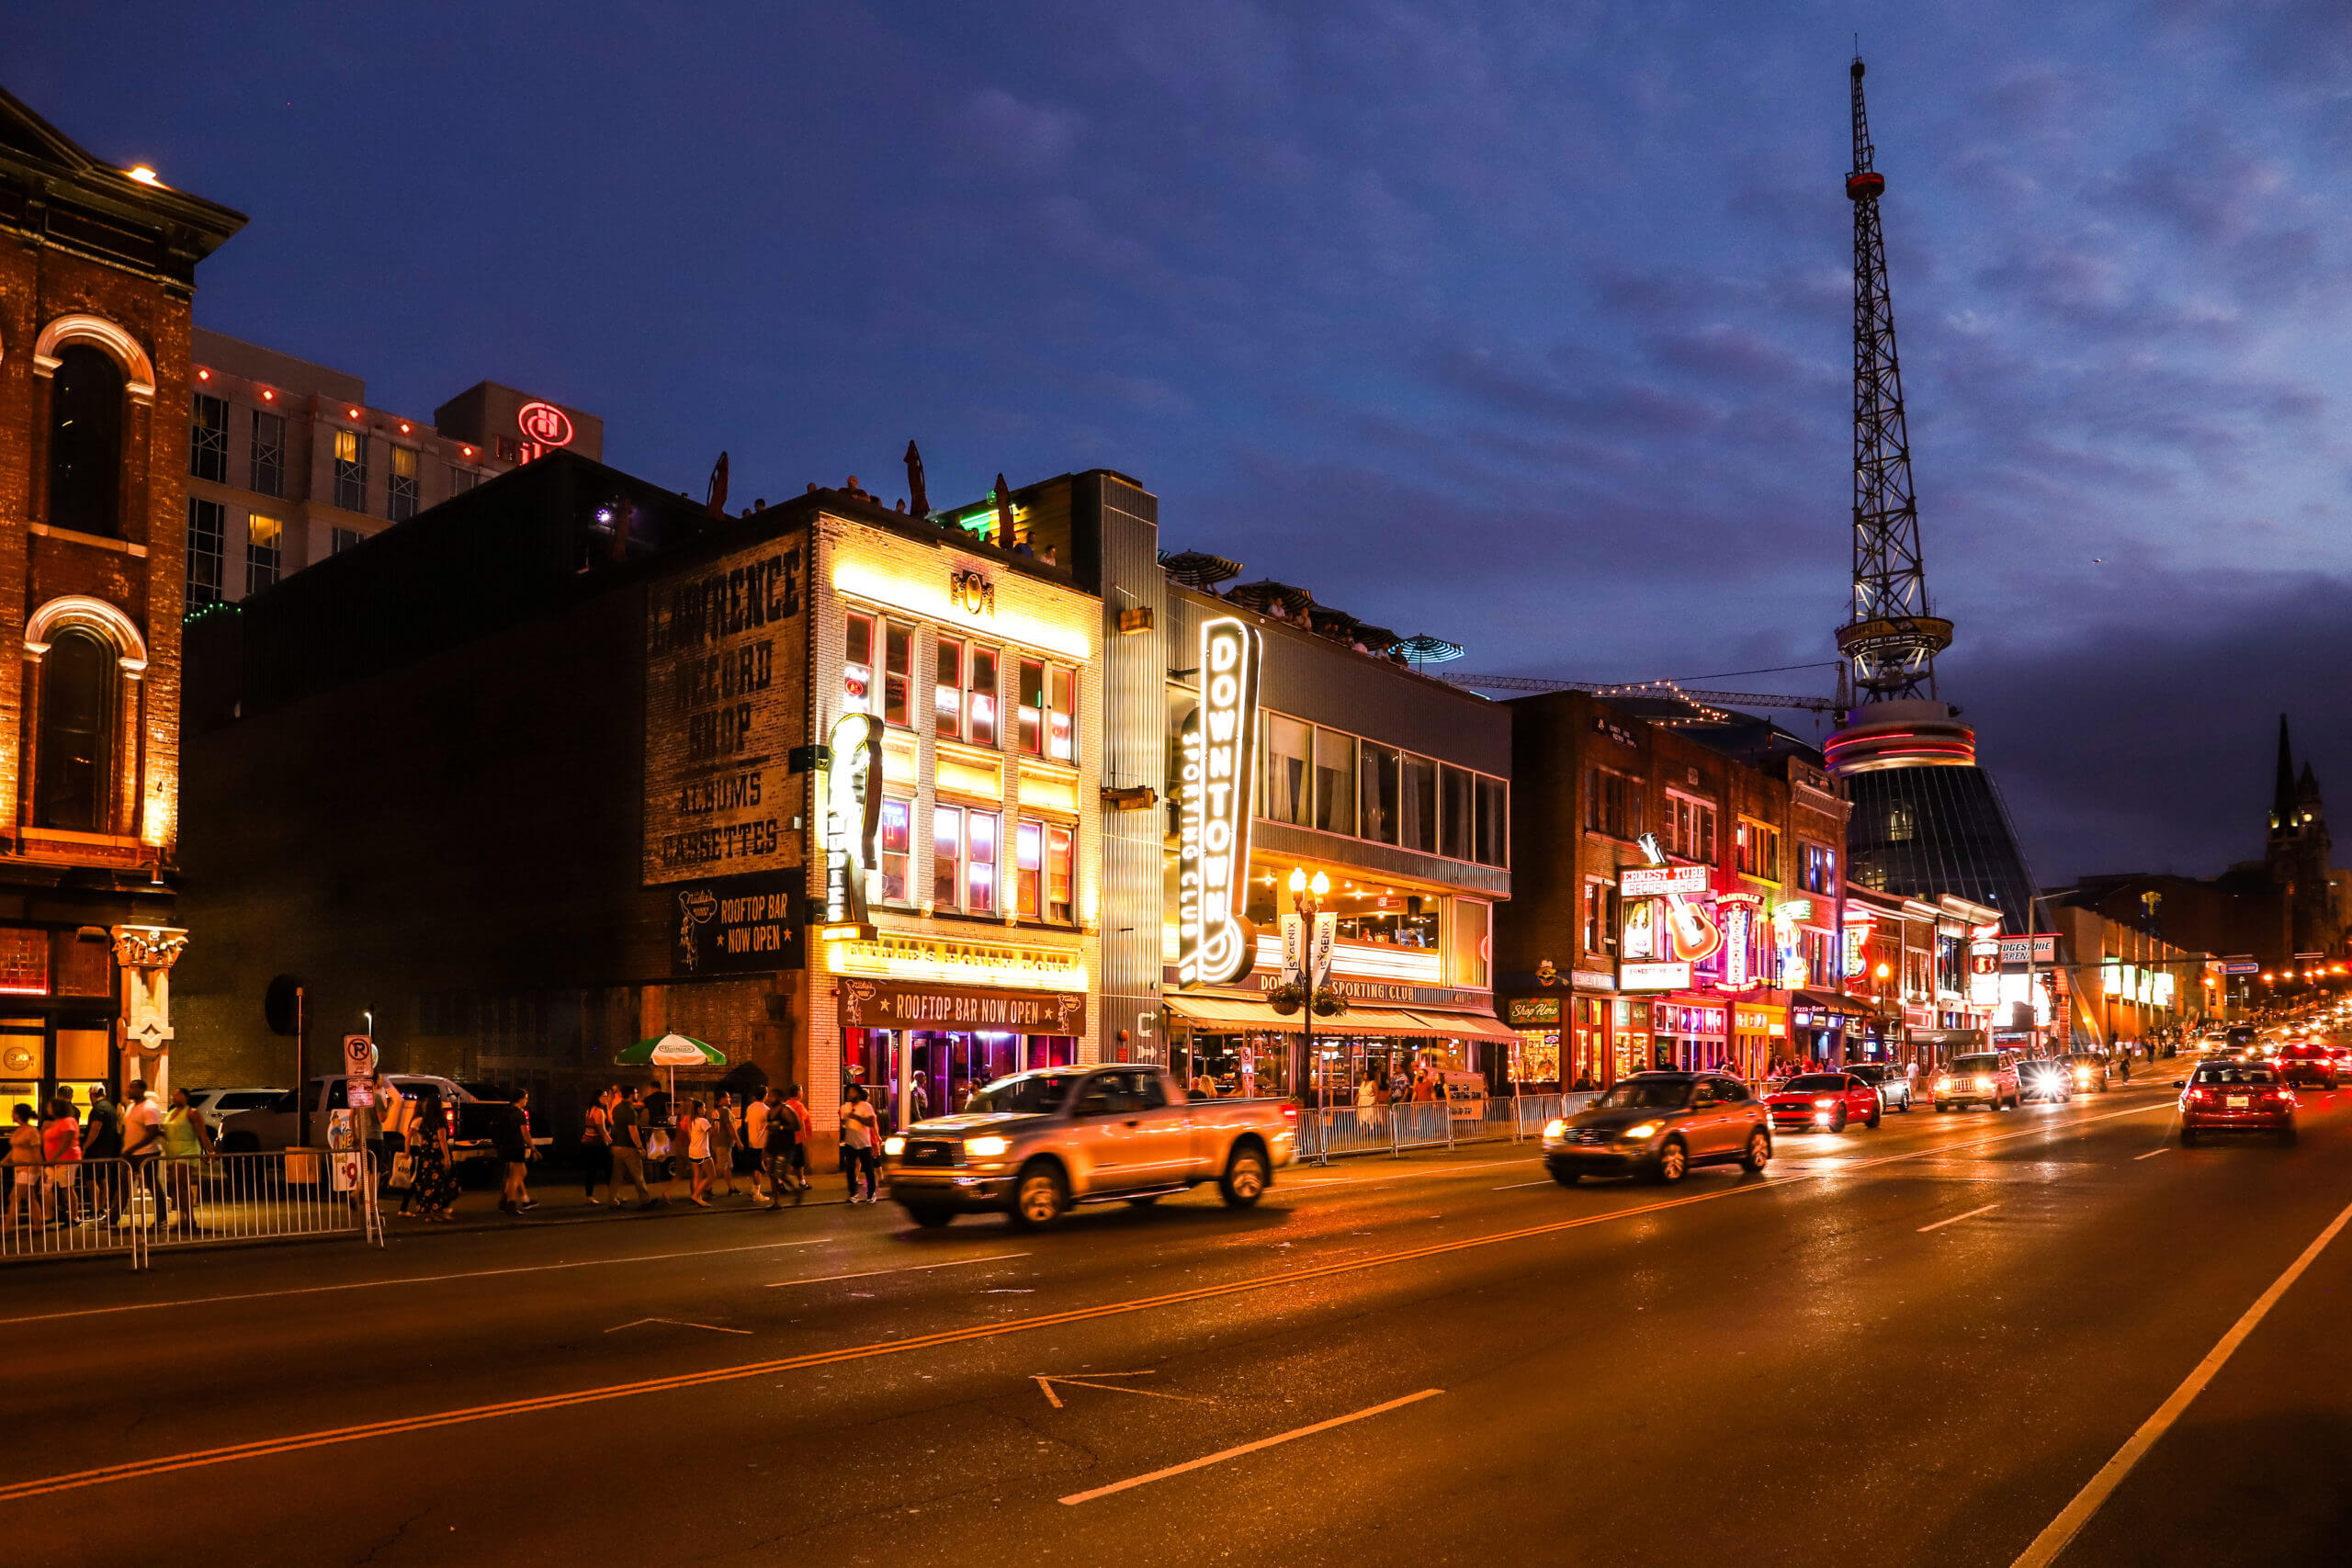 Next stop: Nashville! Join us in this amazing Trip!